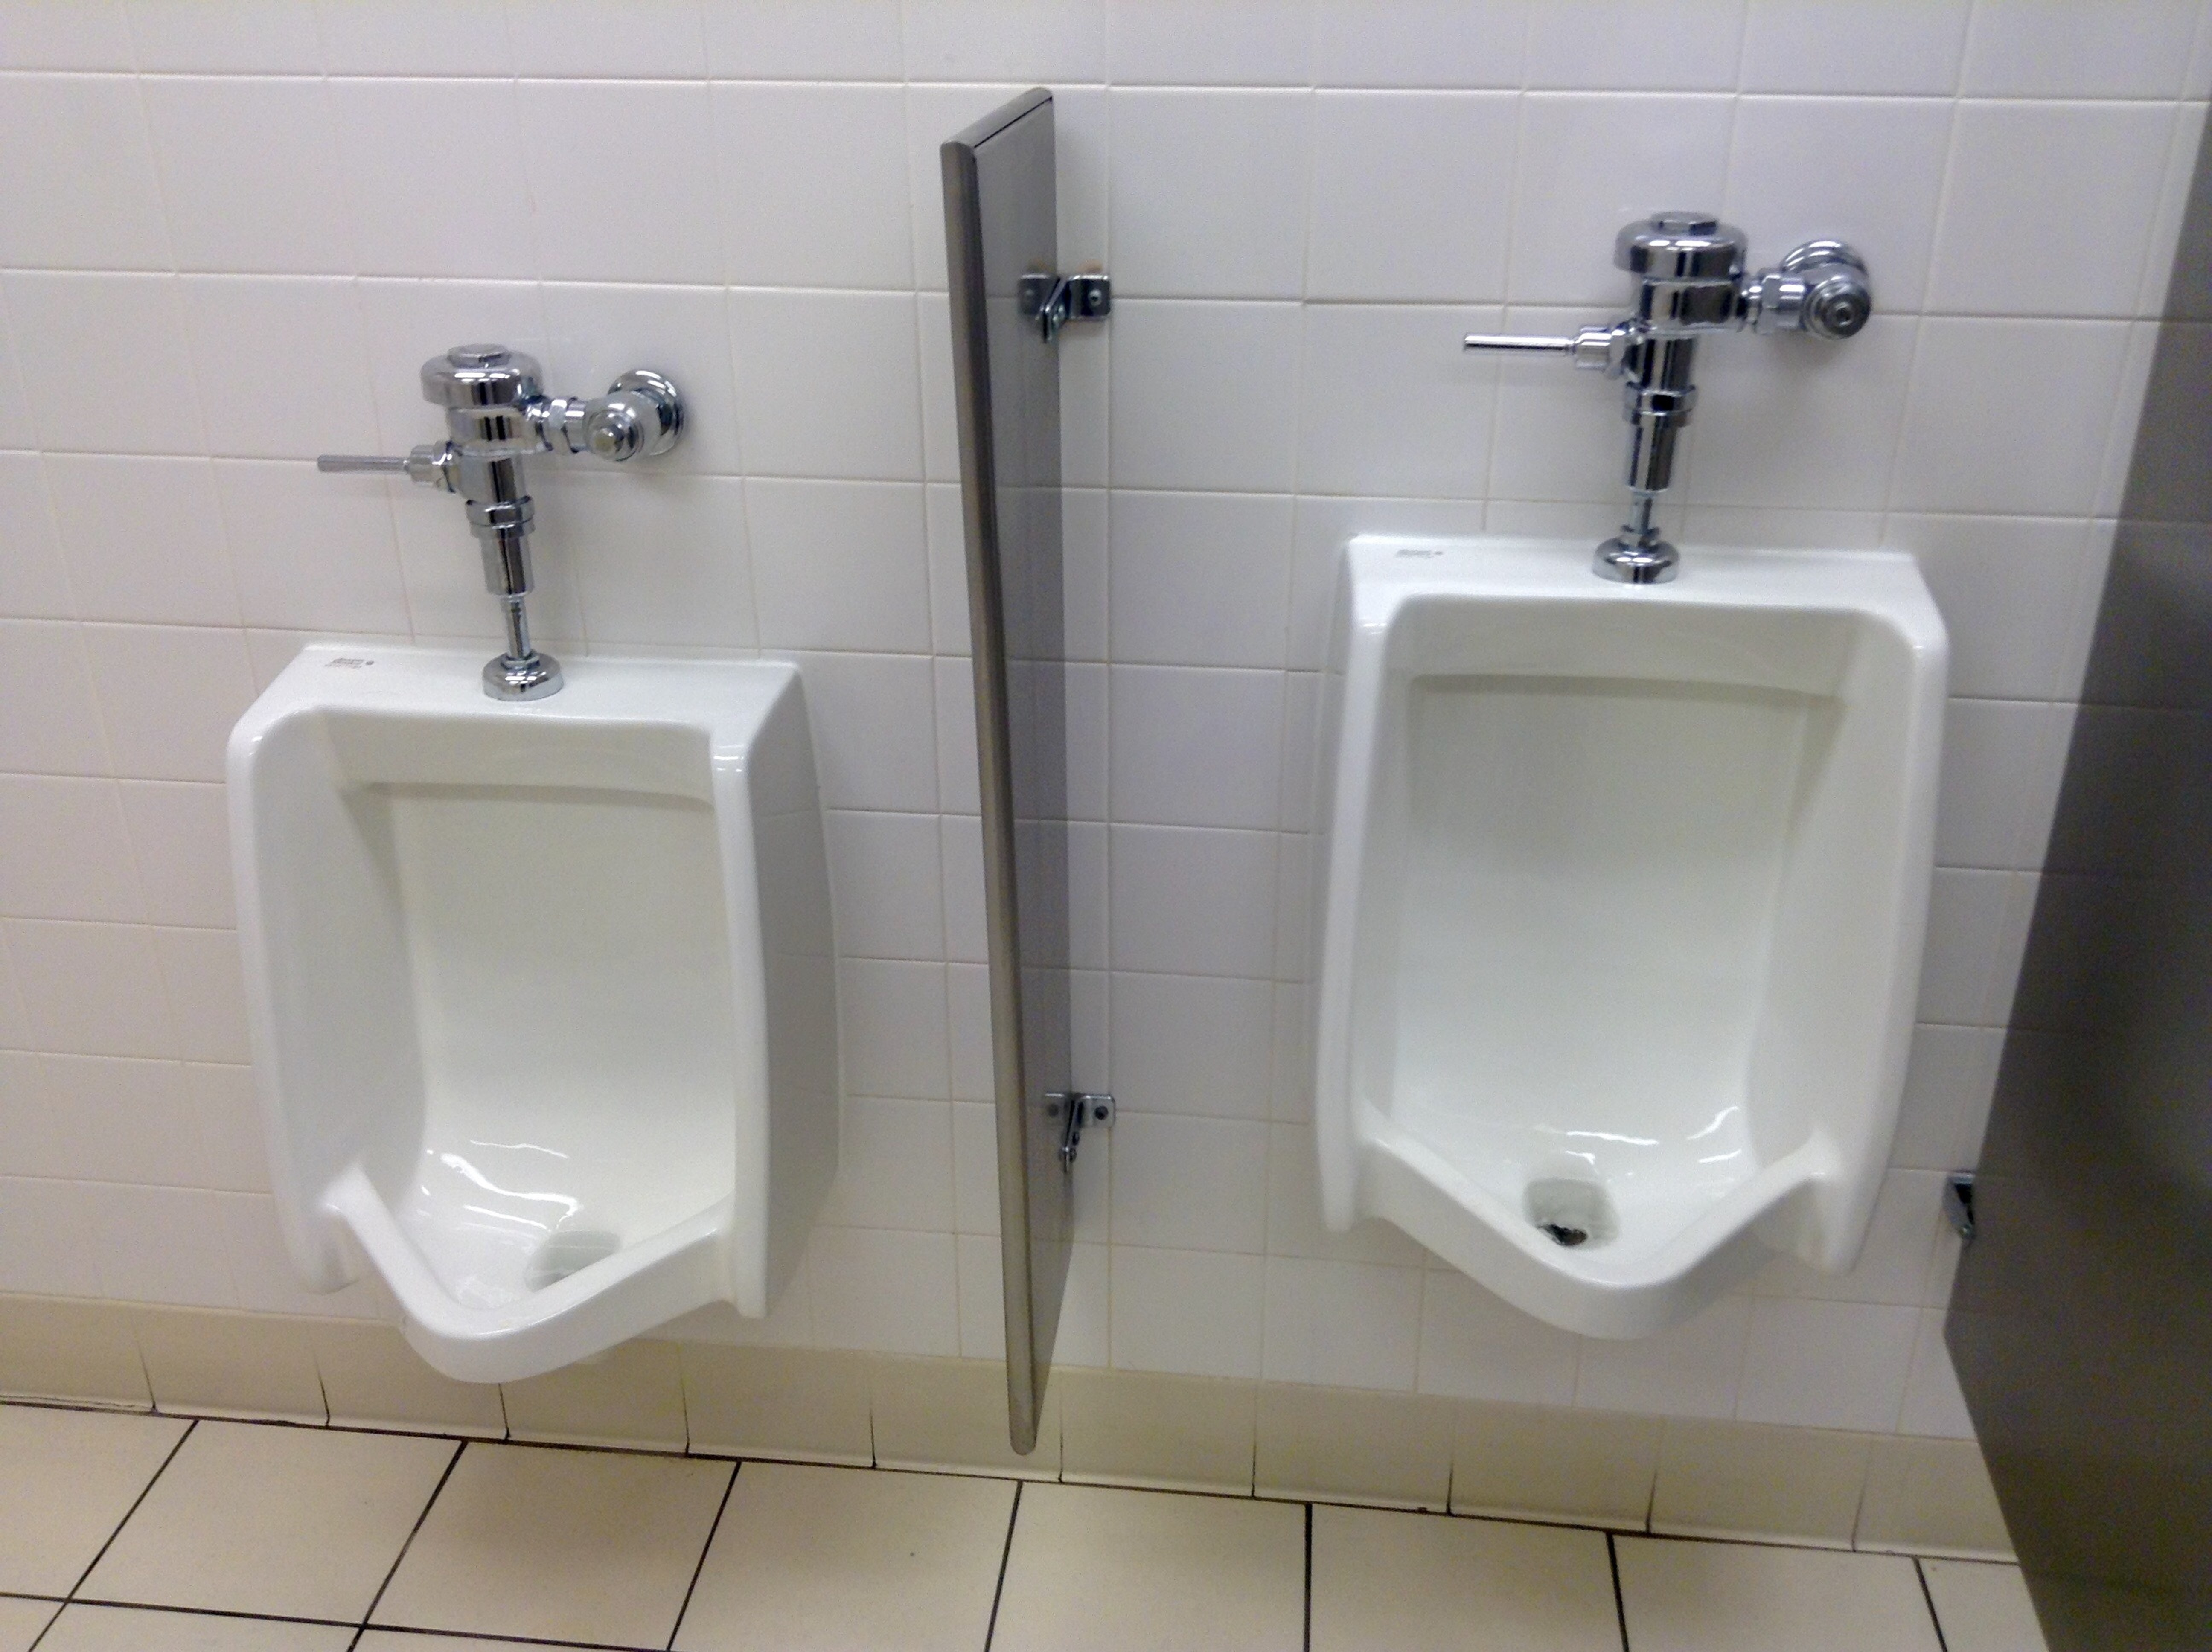 Urinals, 12/2014, by Mike Mozart of TheToyChannel and JeepersMedia on YouTube.